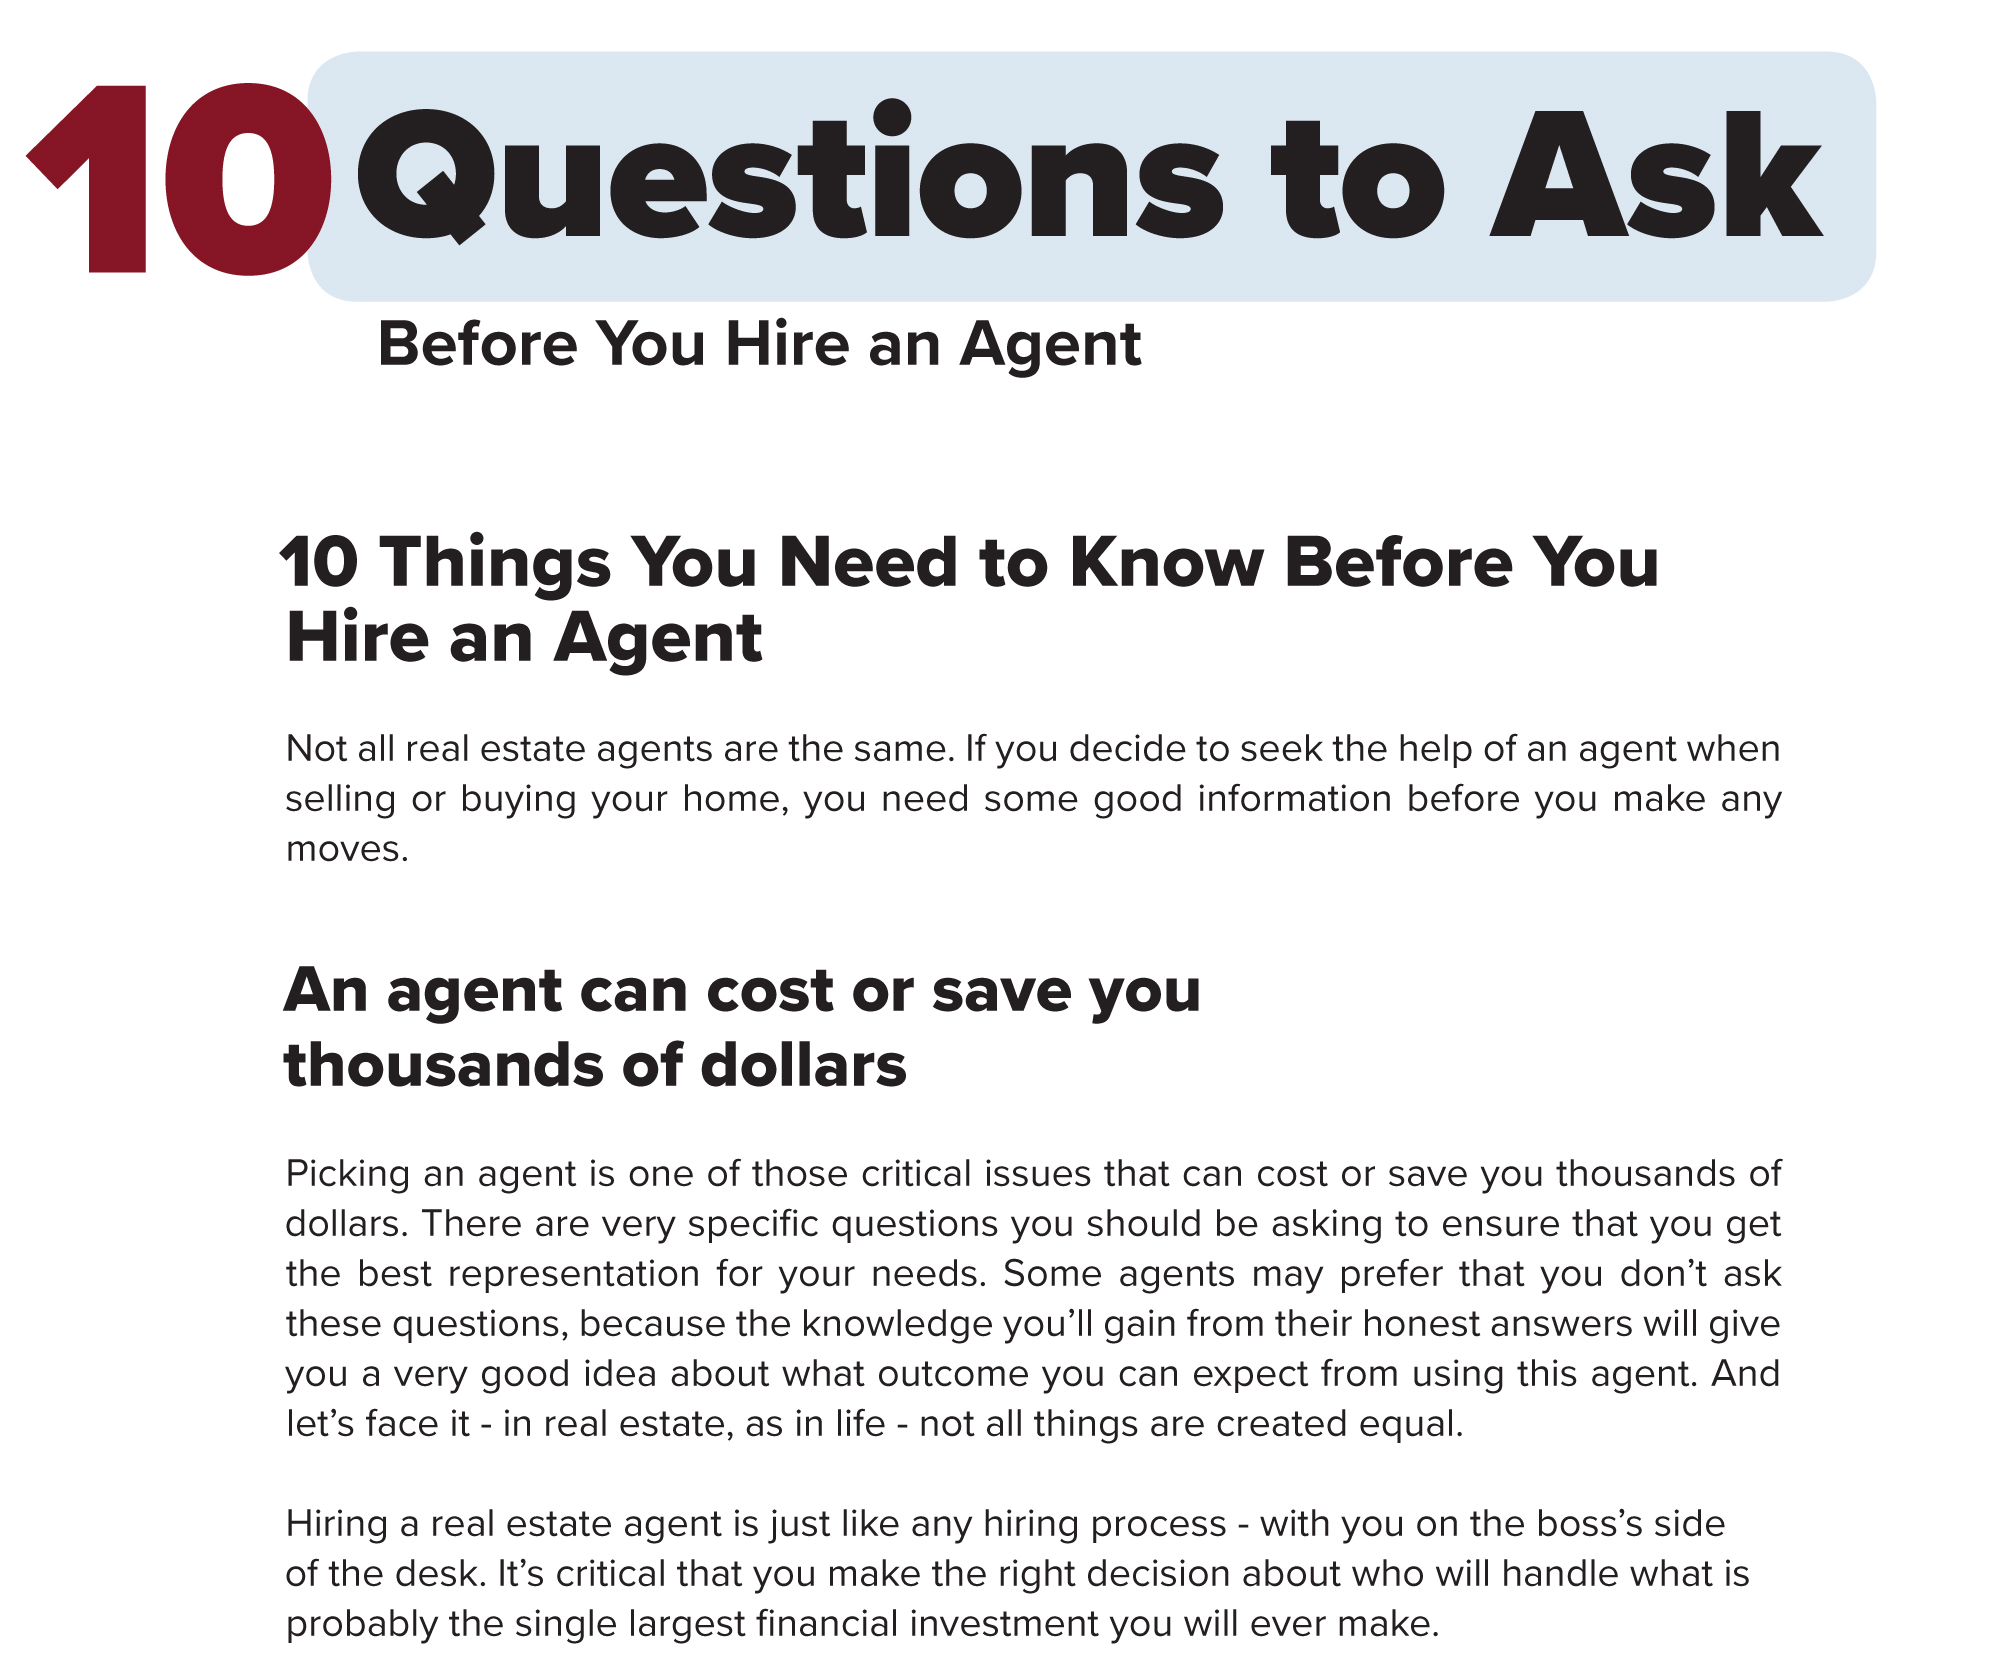 10 questions to ask before hiring a realtor-1.jpg